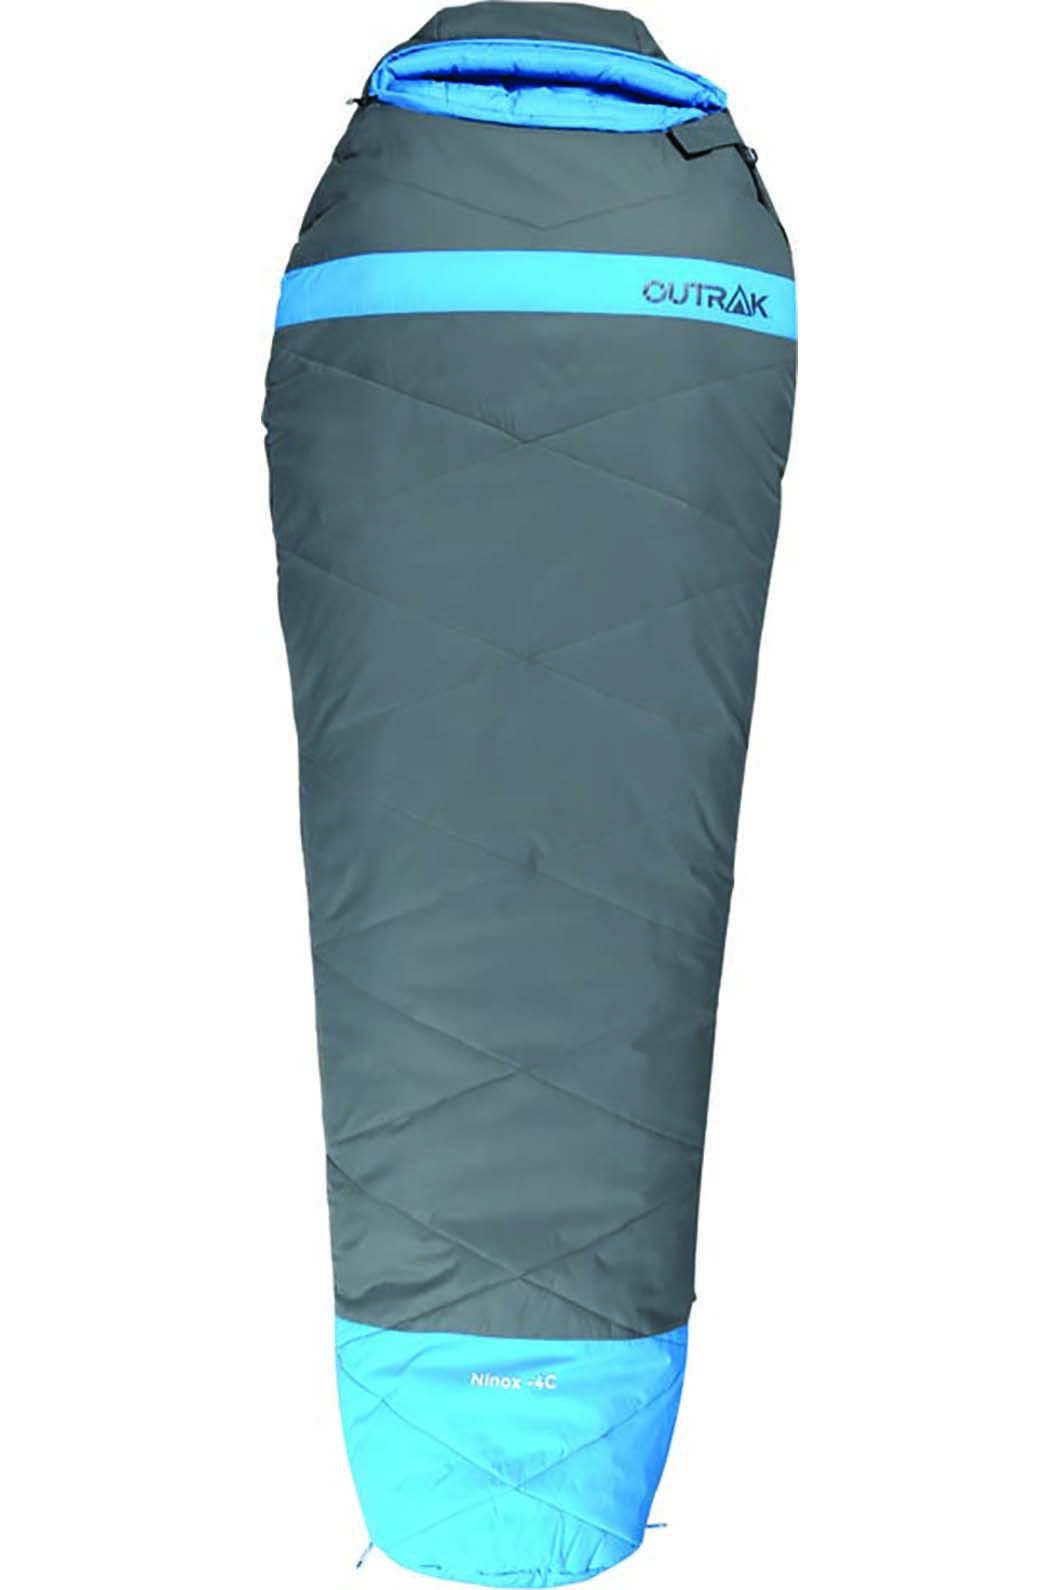 Outrak Ninox Sleeping Bag -4, None, hi-res